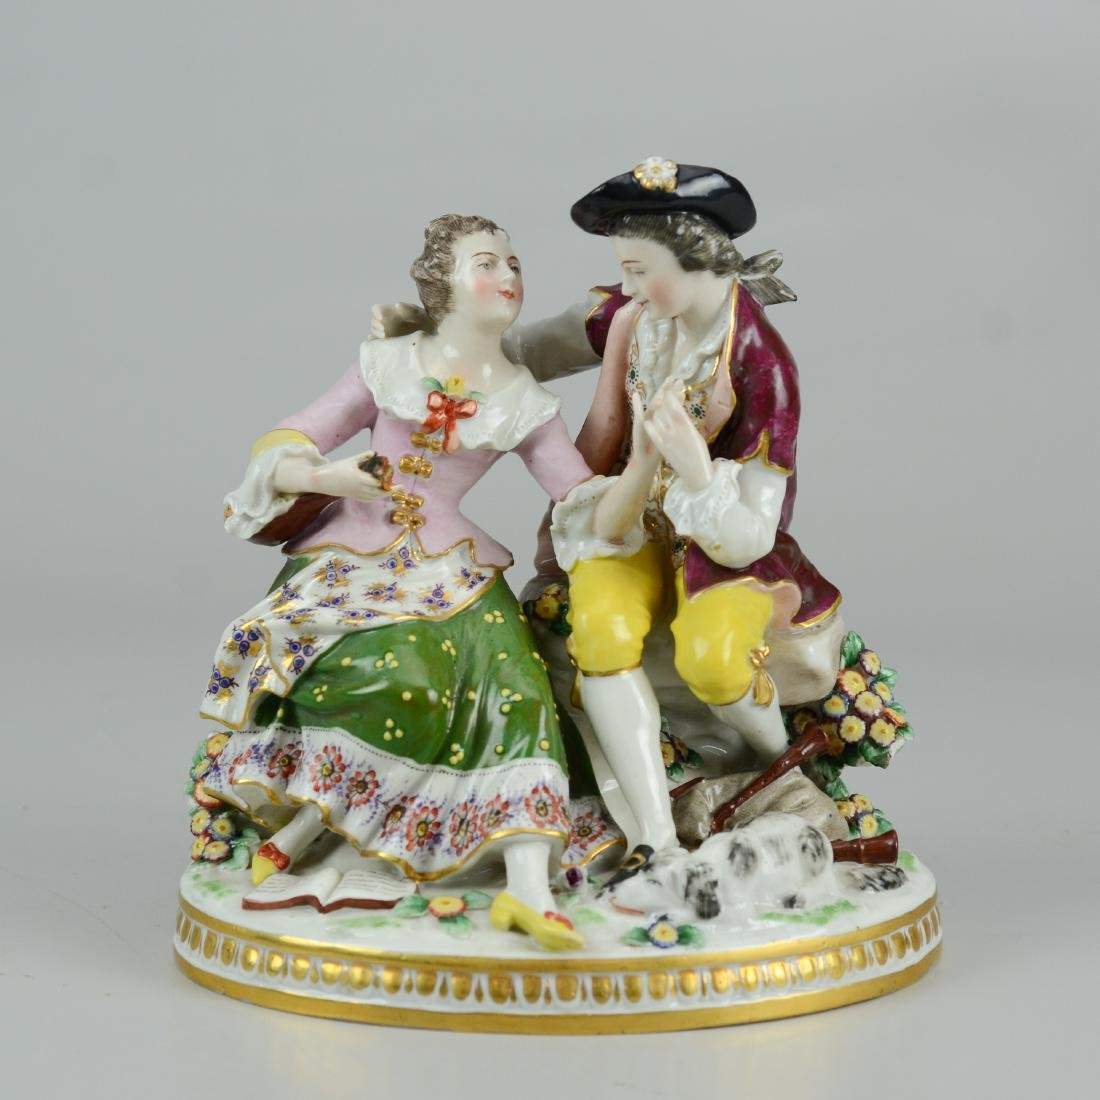 German porcelain courting couple figurine